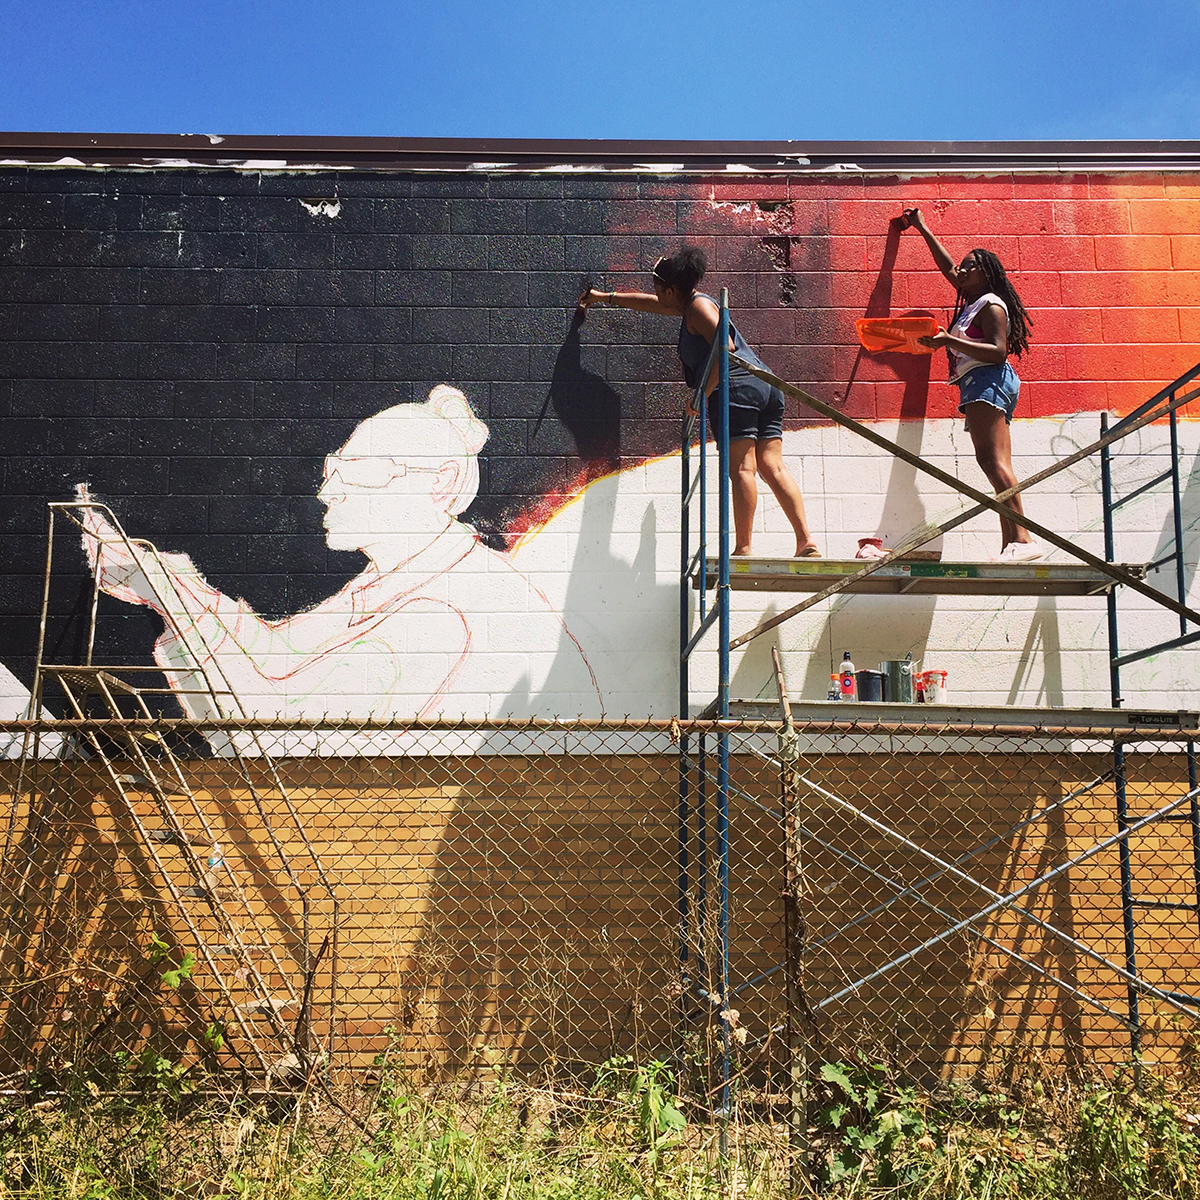 High school students participate in a mural project in the Brightmoor neighborhood of Detroit as part of the College for Creative Studies summer arts programming.